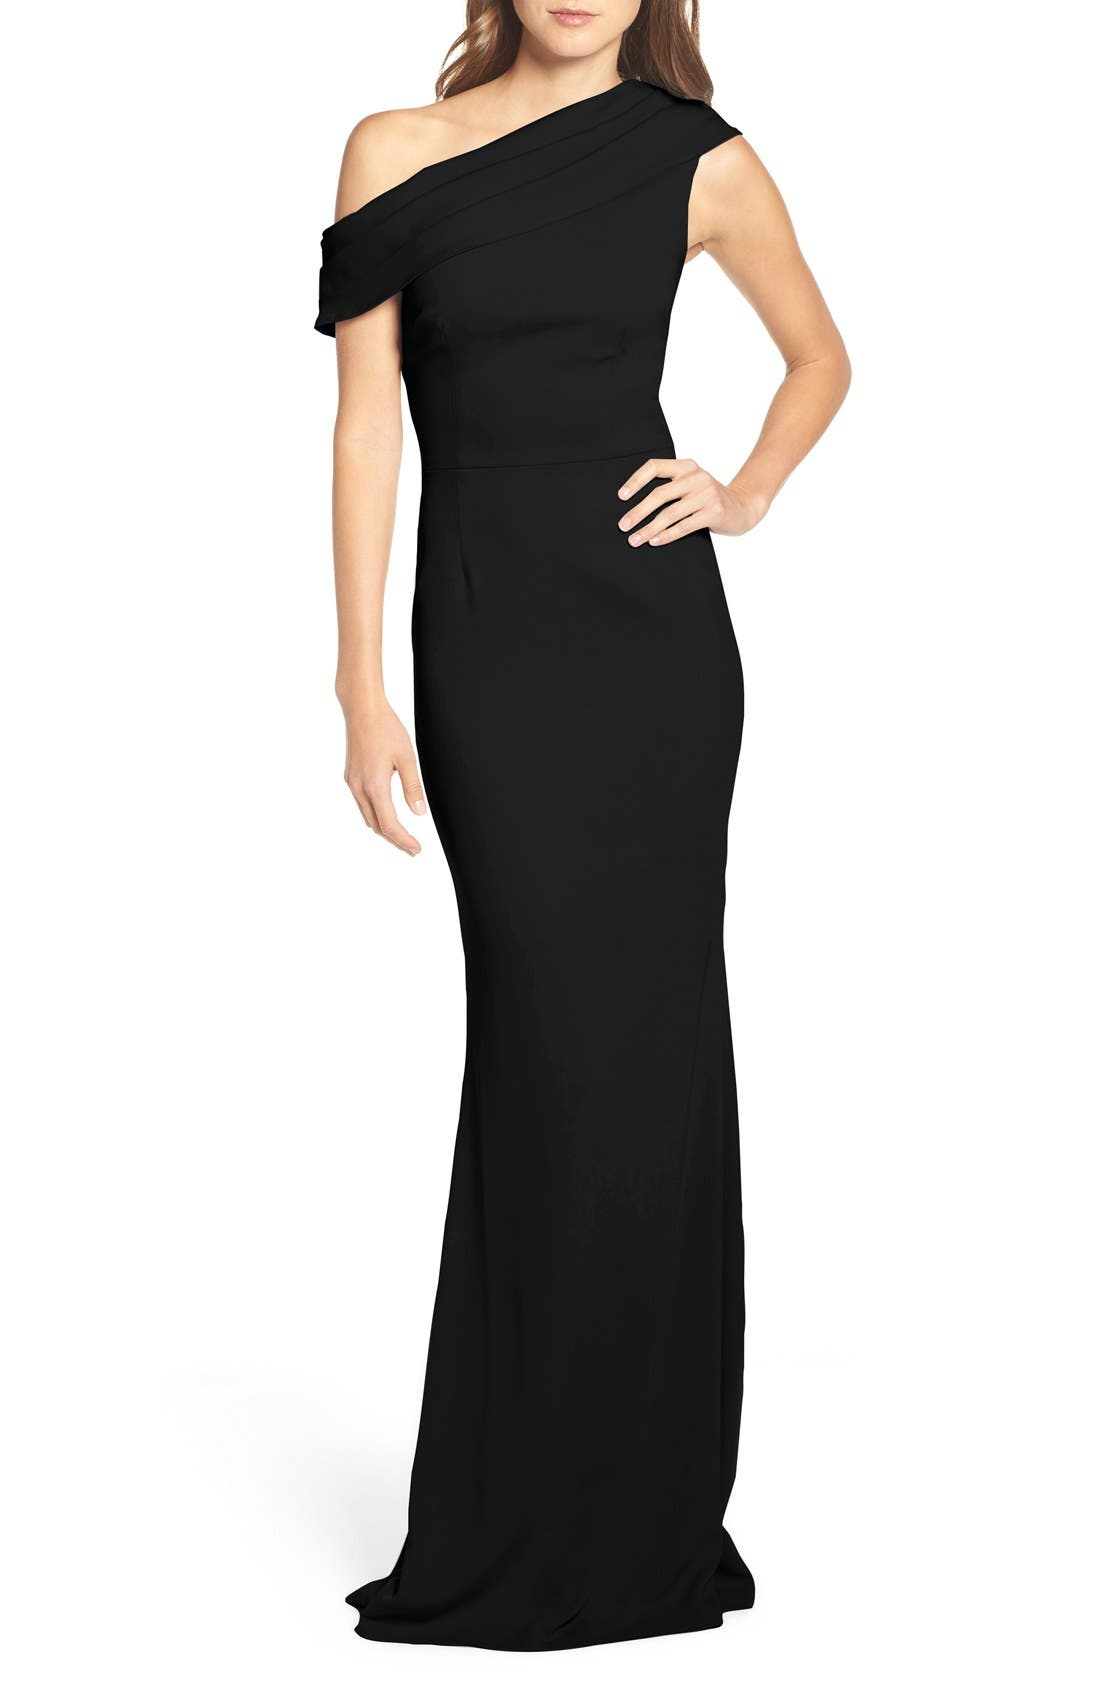 Katie May Pleat One-Shoulder Crepe Gown